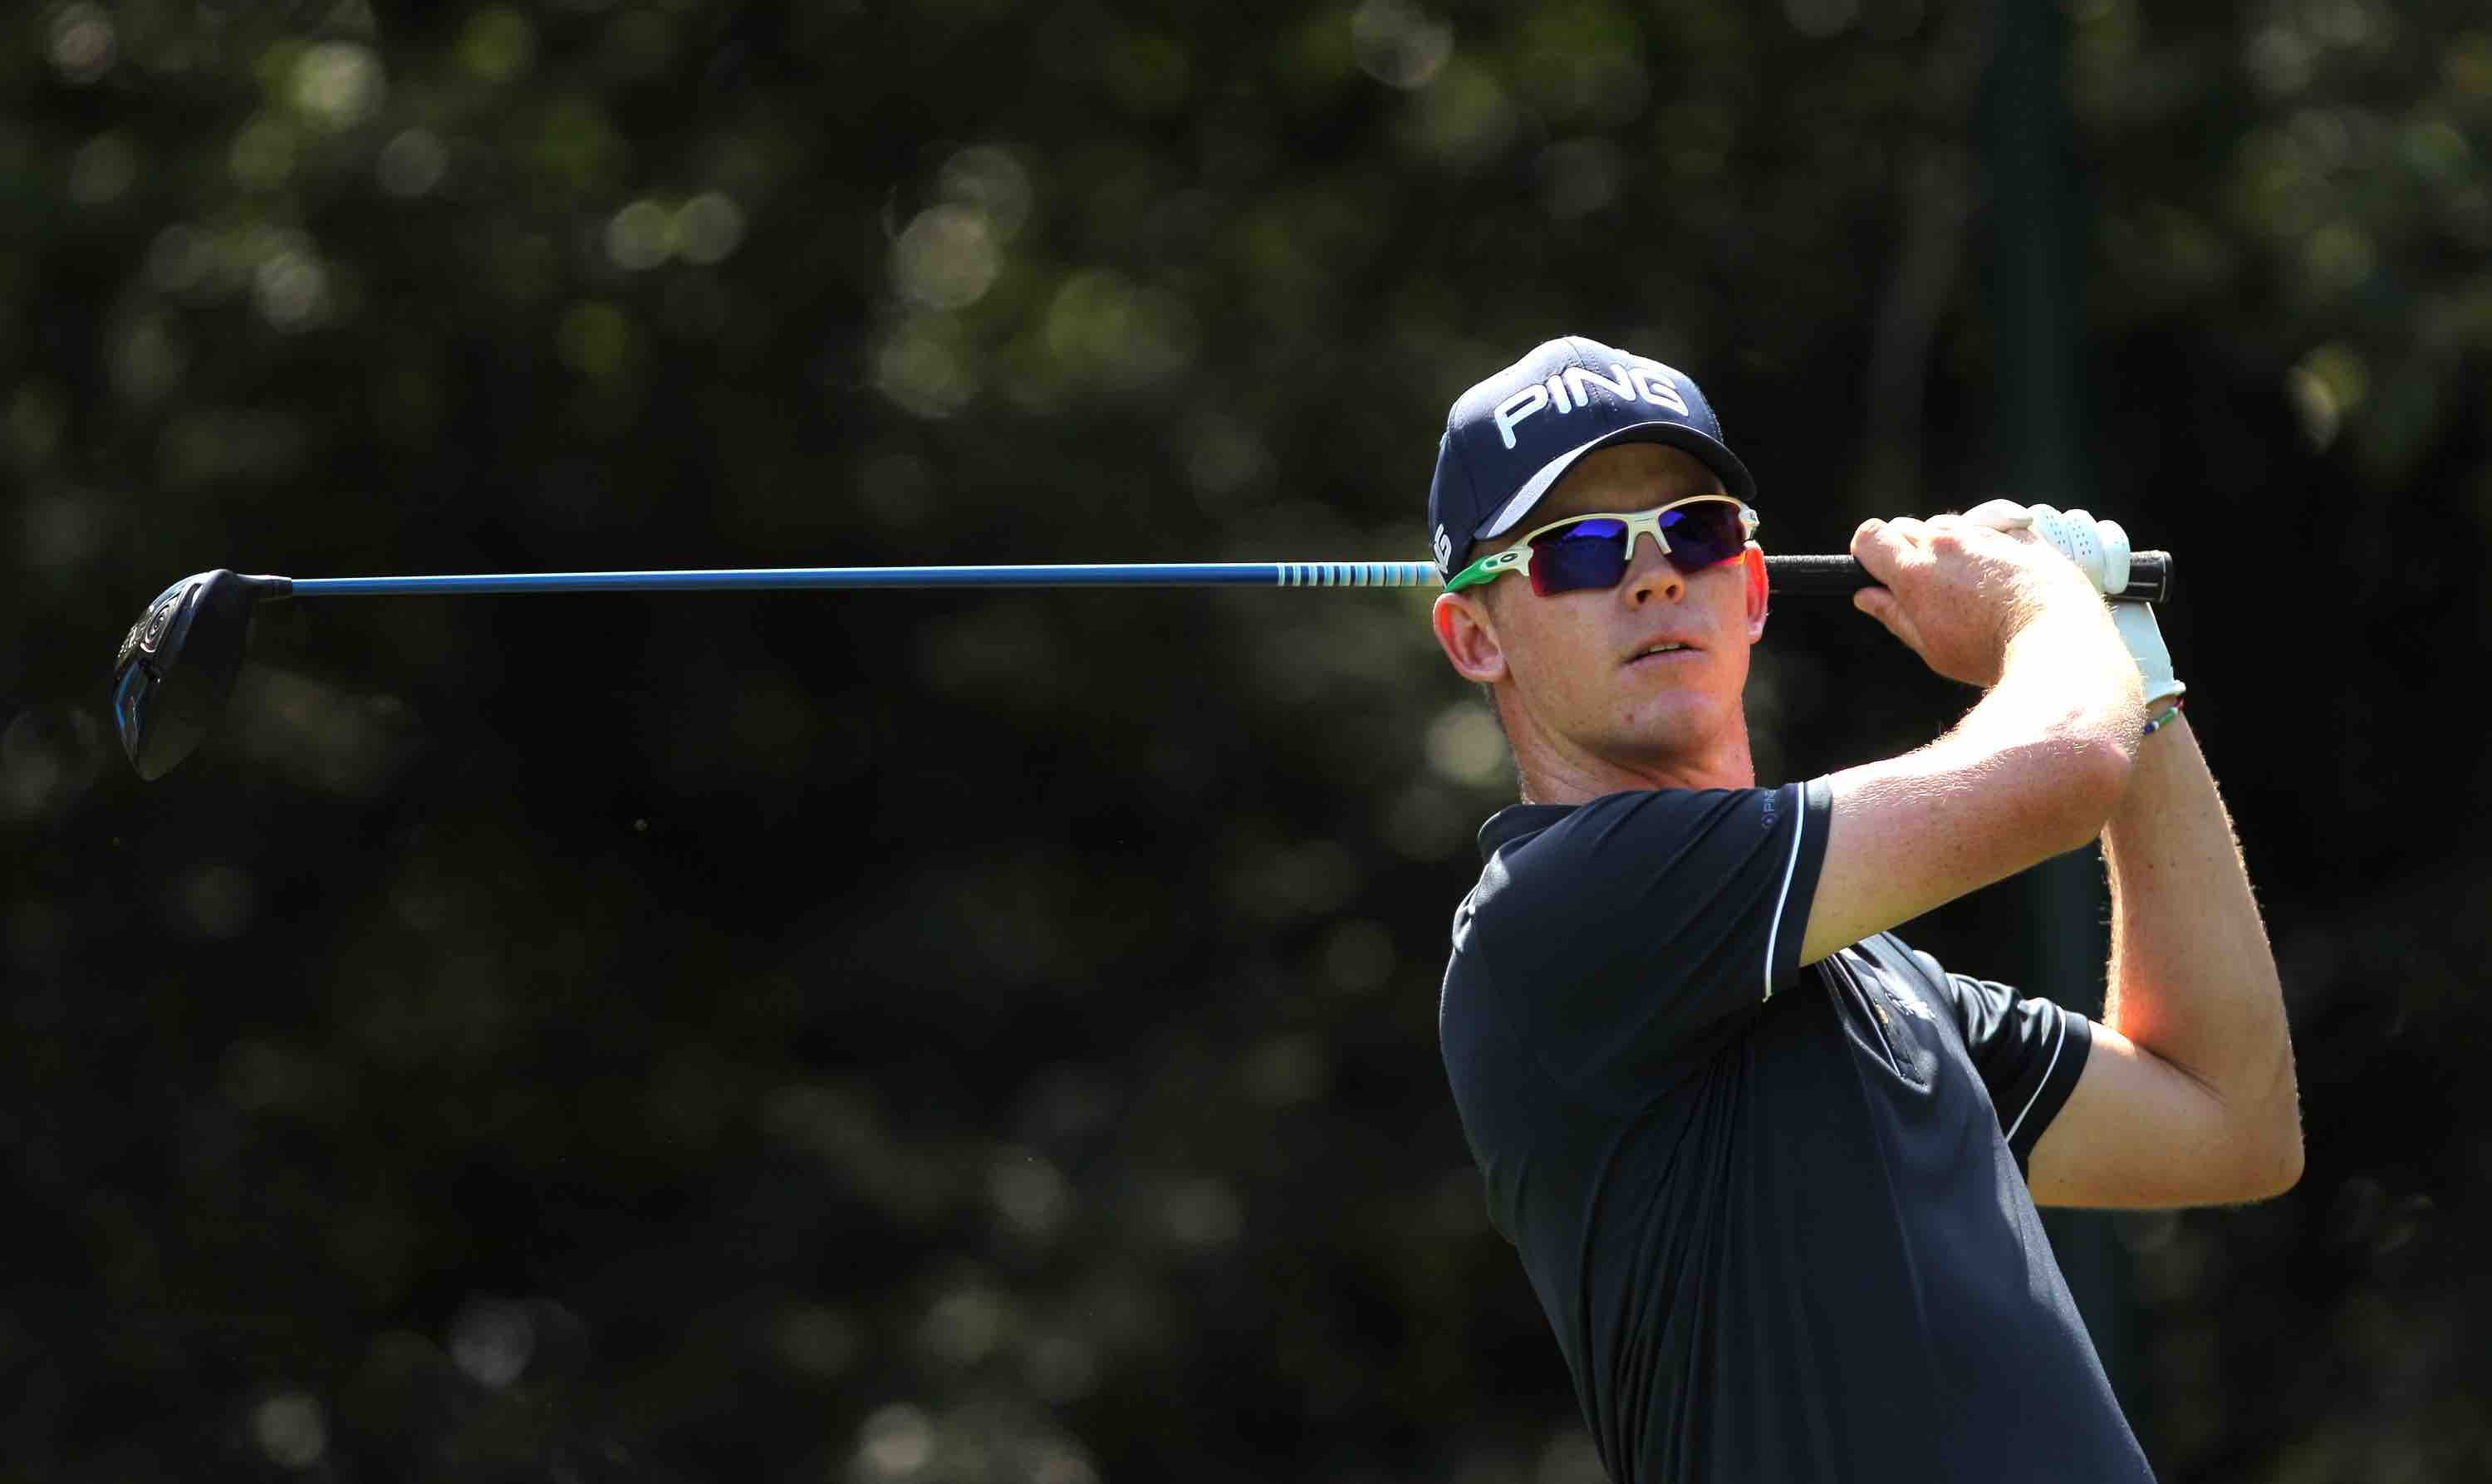 Stone rock solid in Alfred Dunhill Championship lead